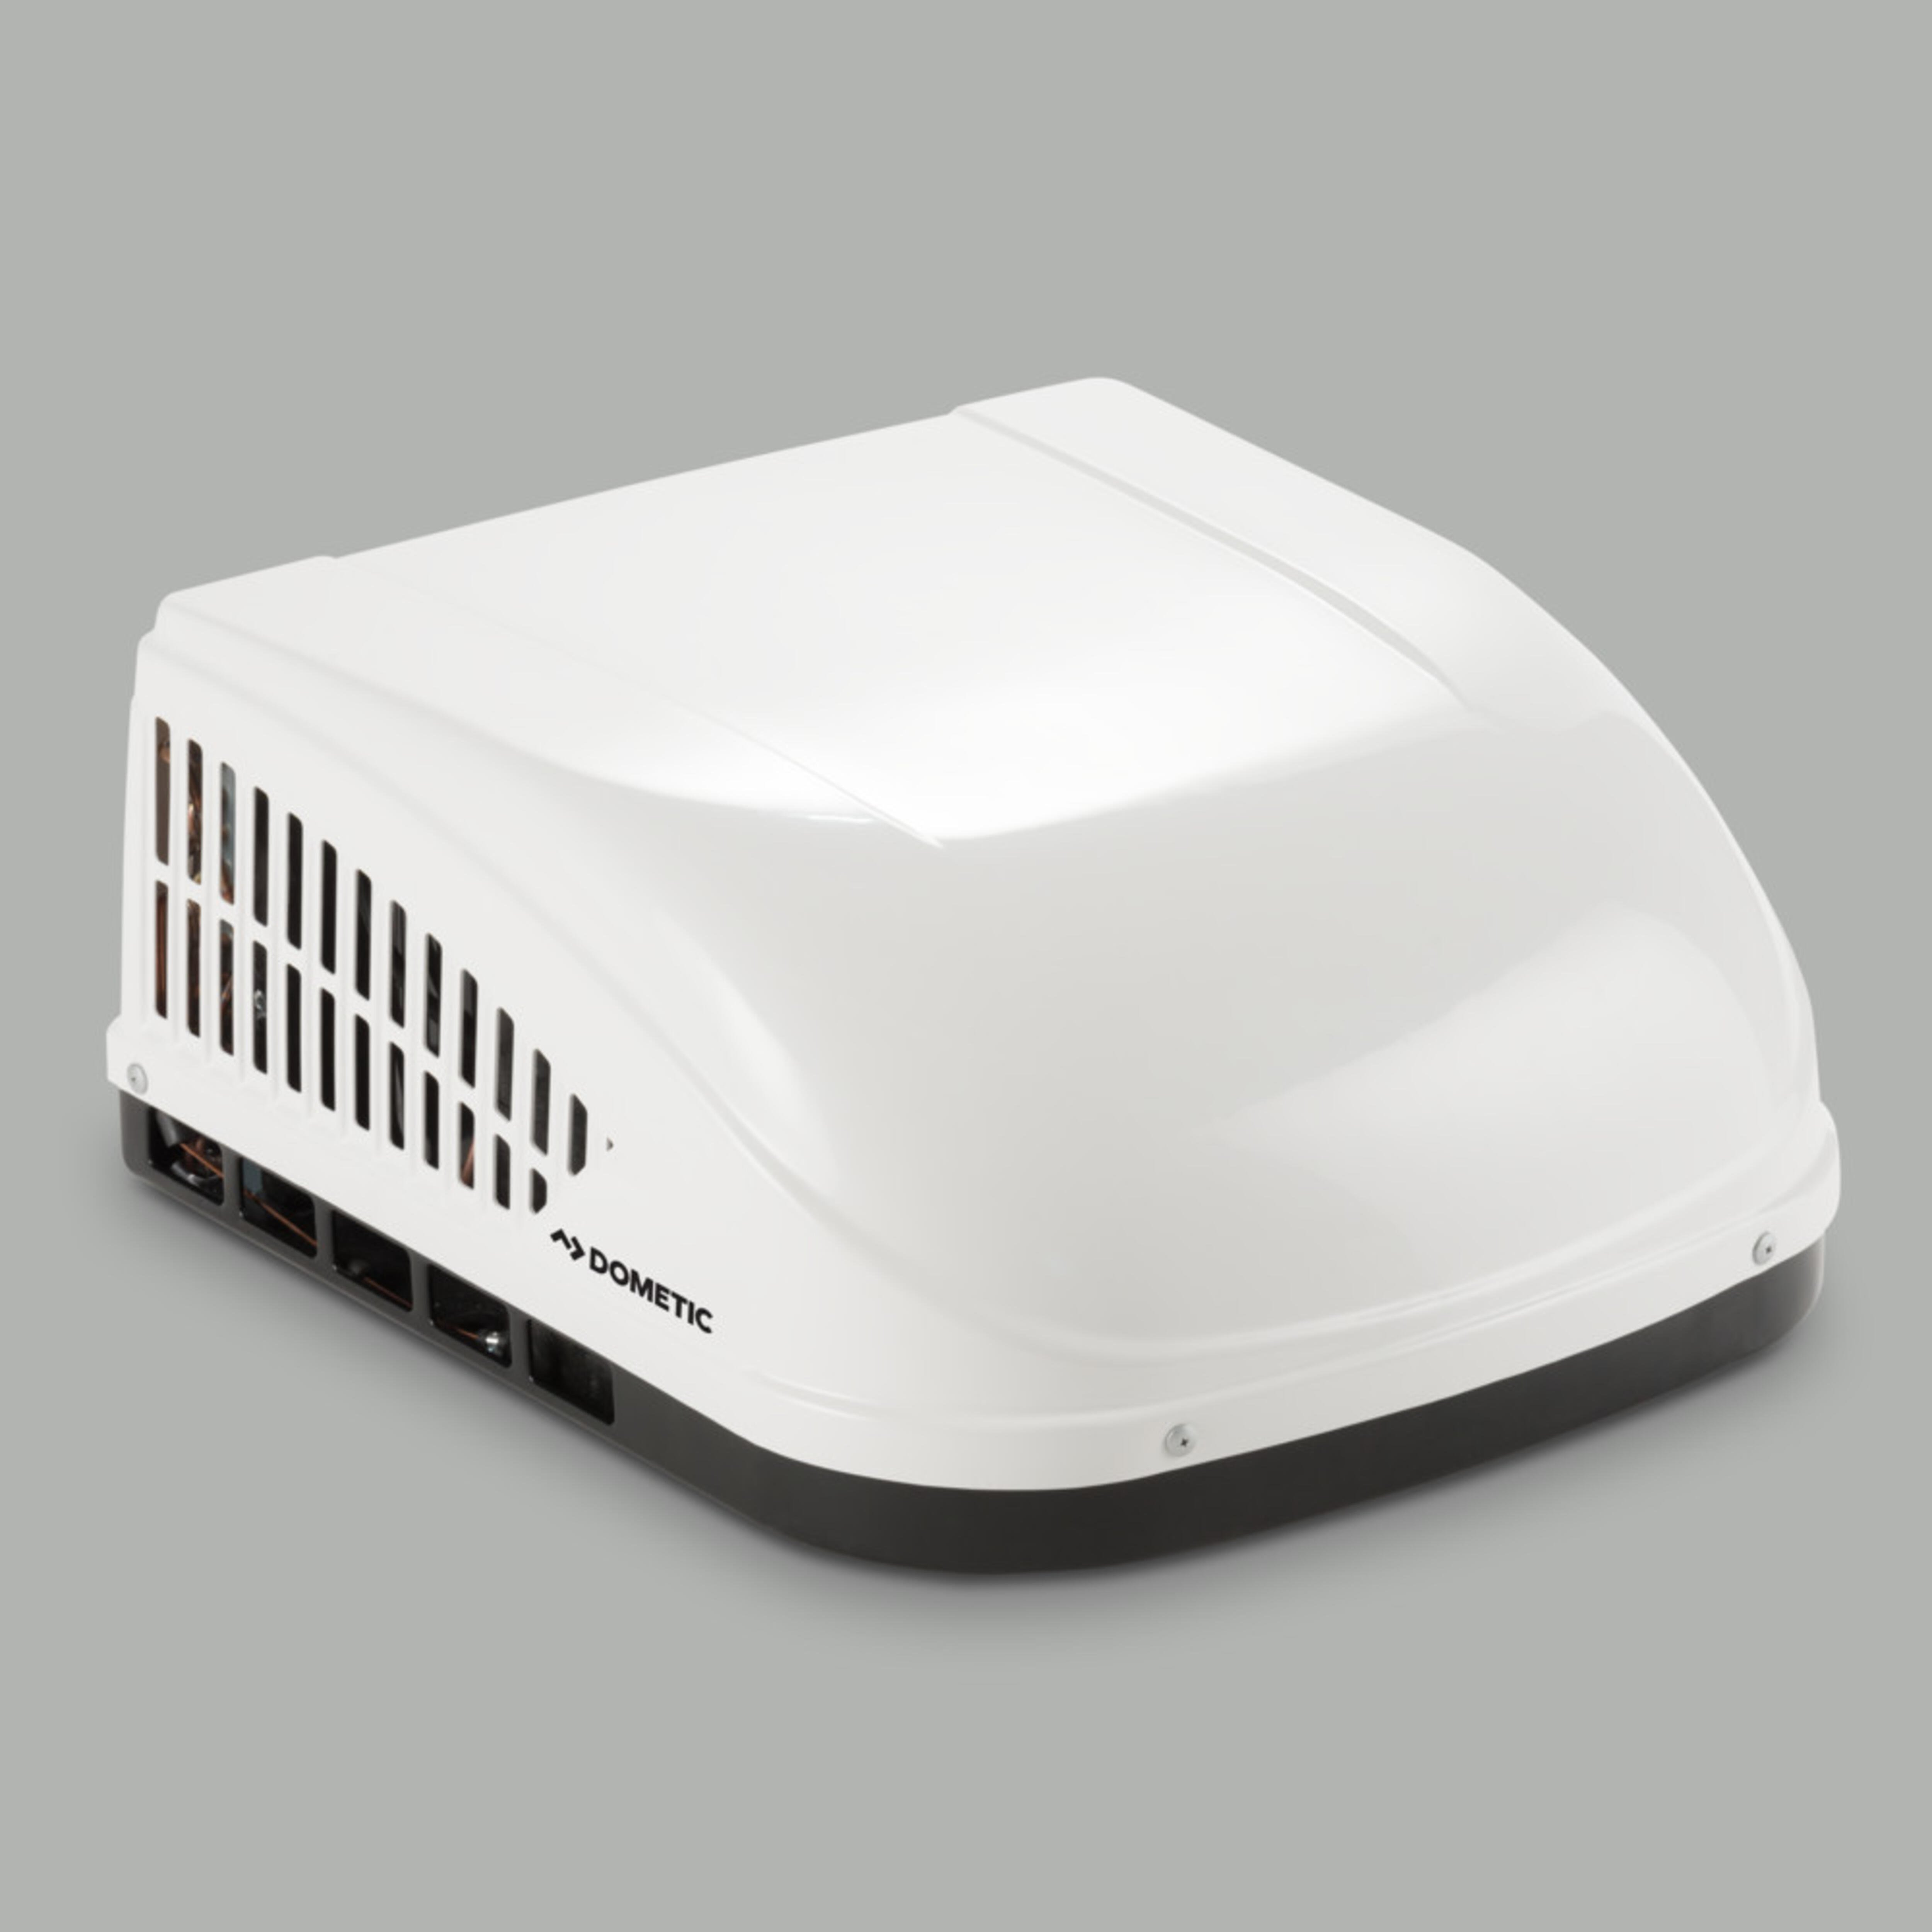 Dometic Commercial Grade